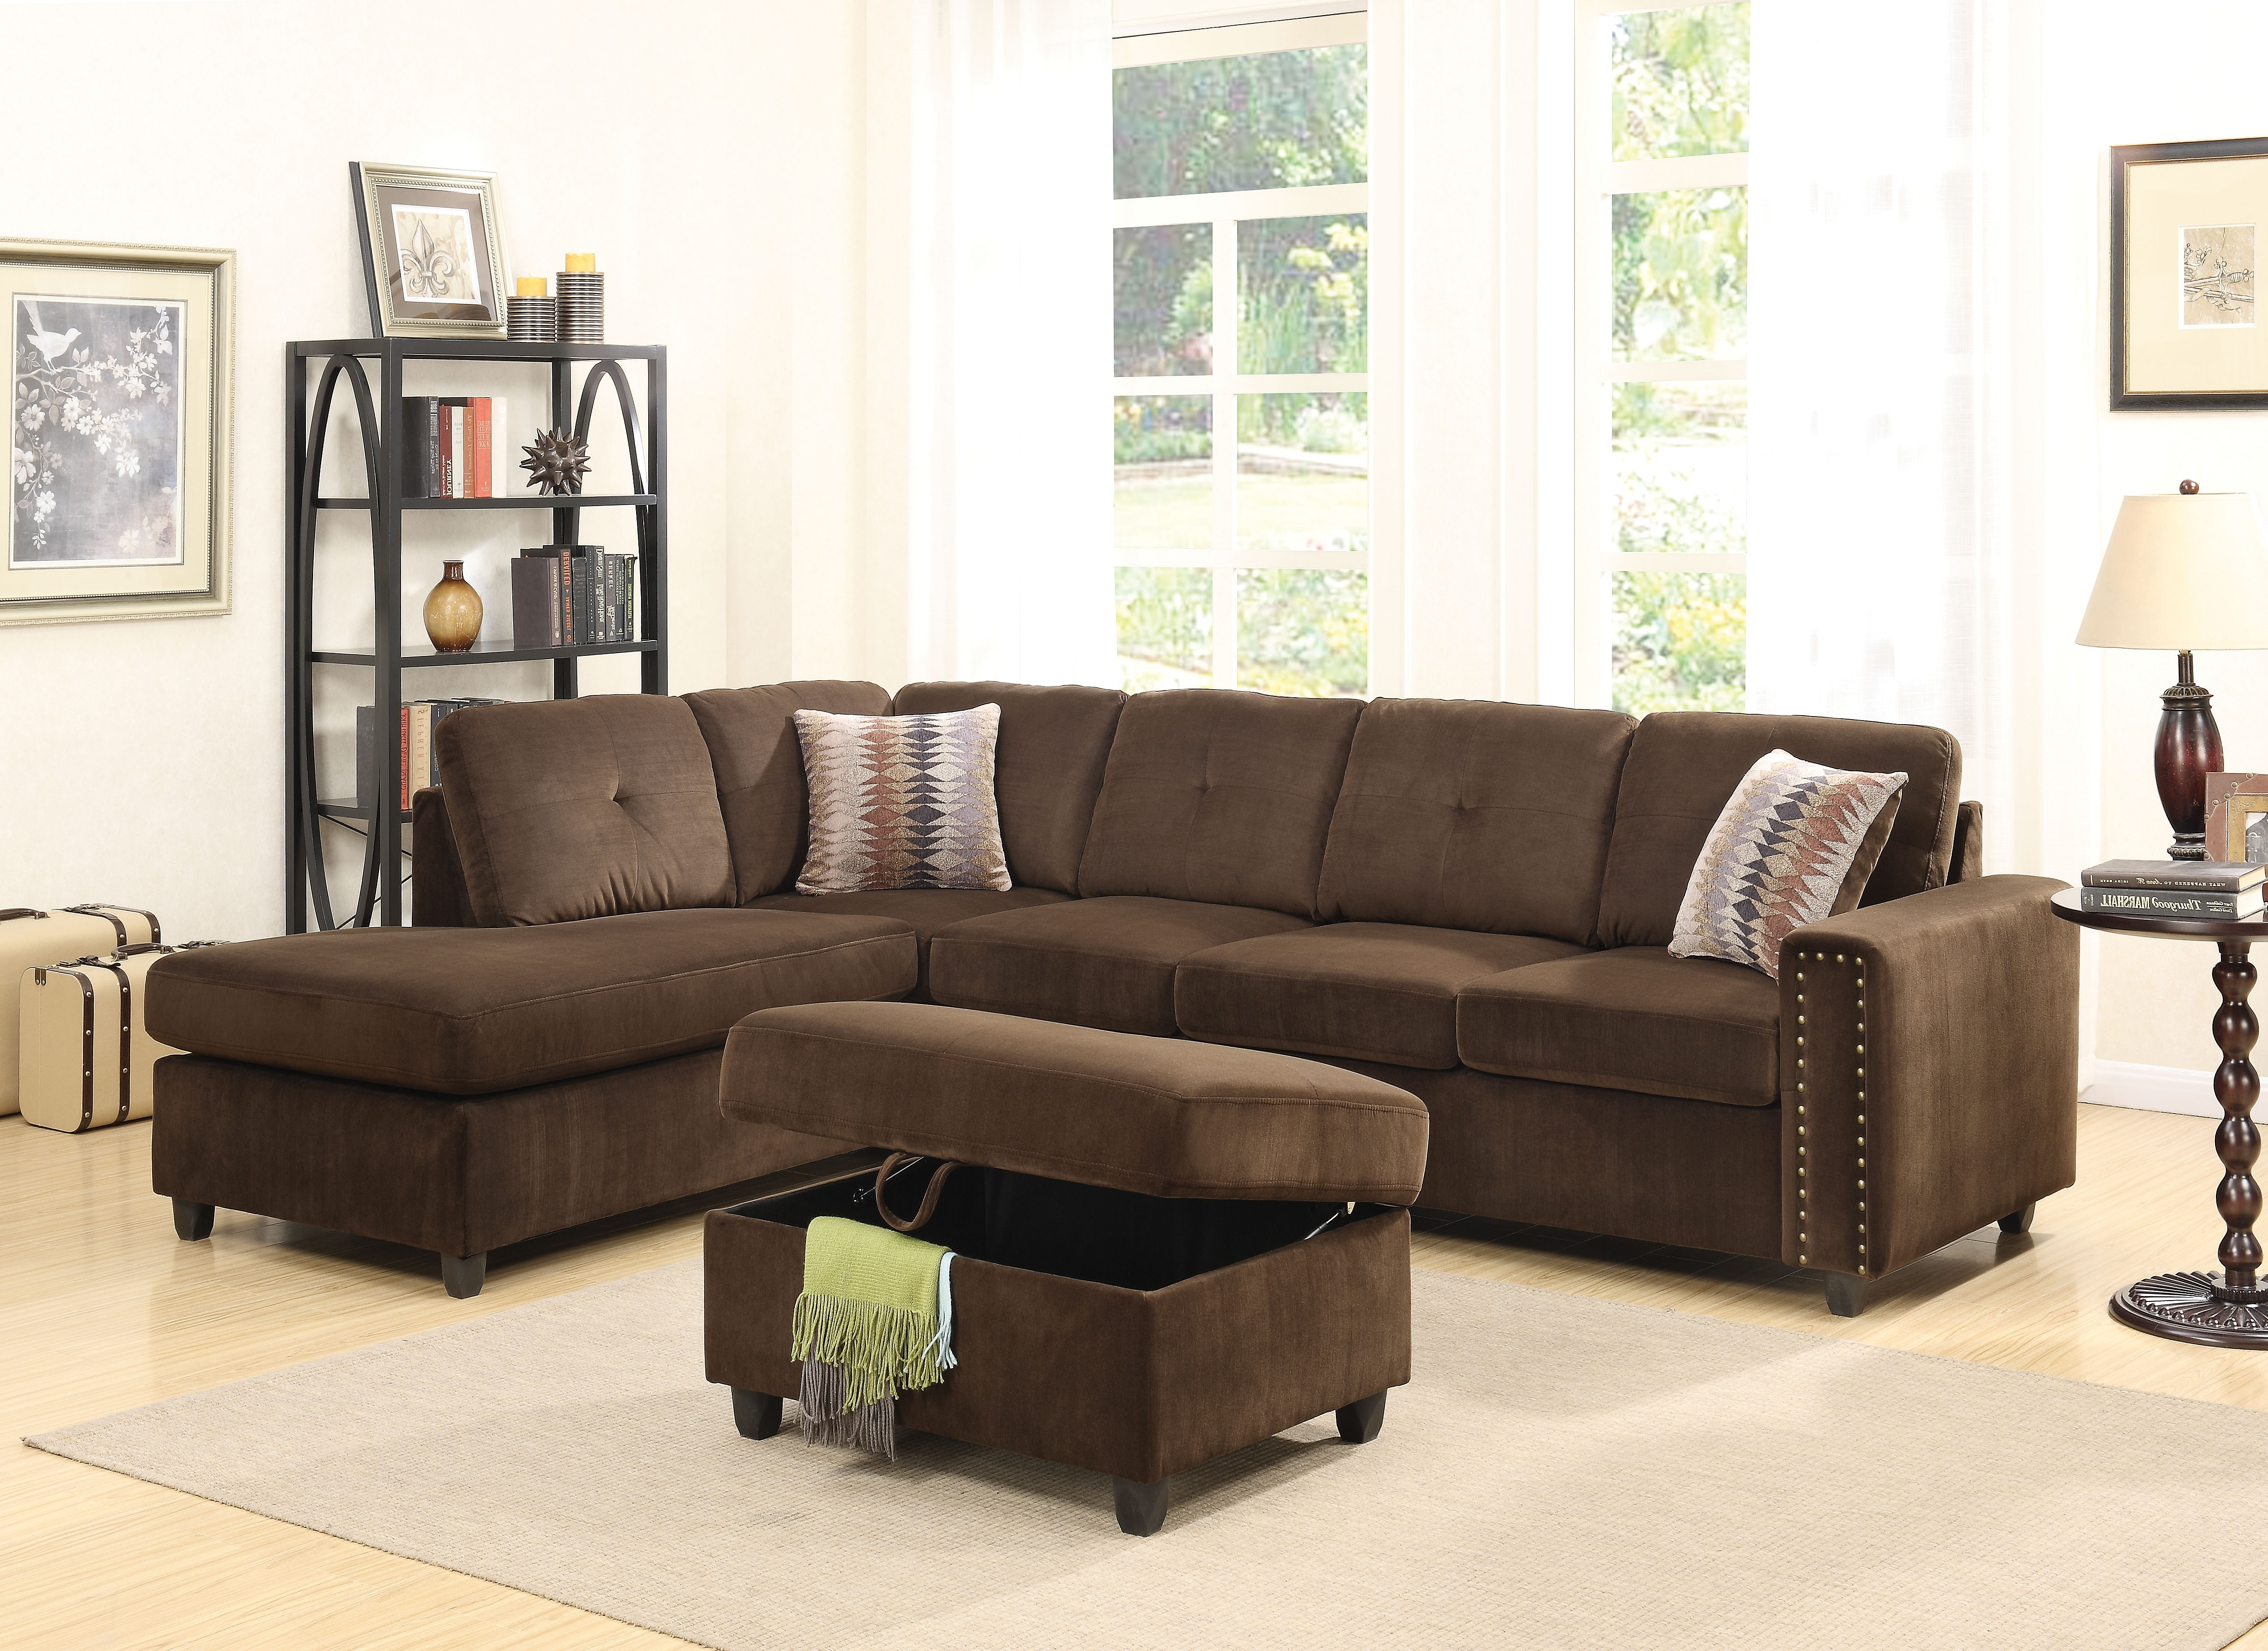 2018 Chocolate Sectional Sofas With Acme Belville Reversible Sectional Sofa With 2 Pillows, Chocolate (View 1 of 15)